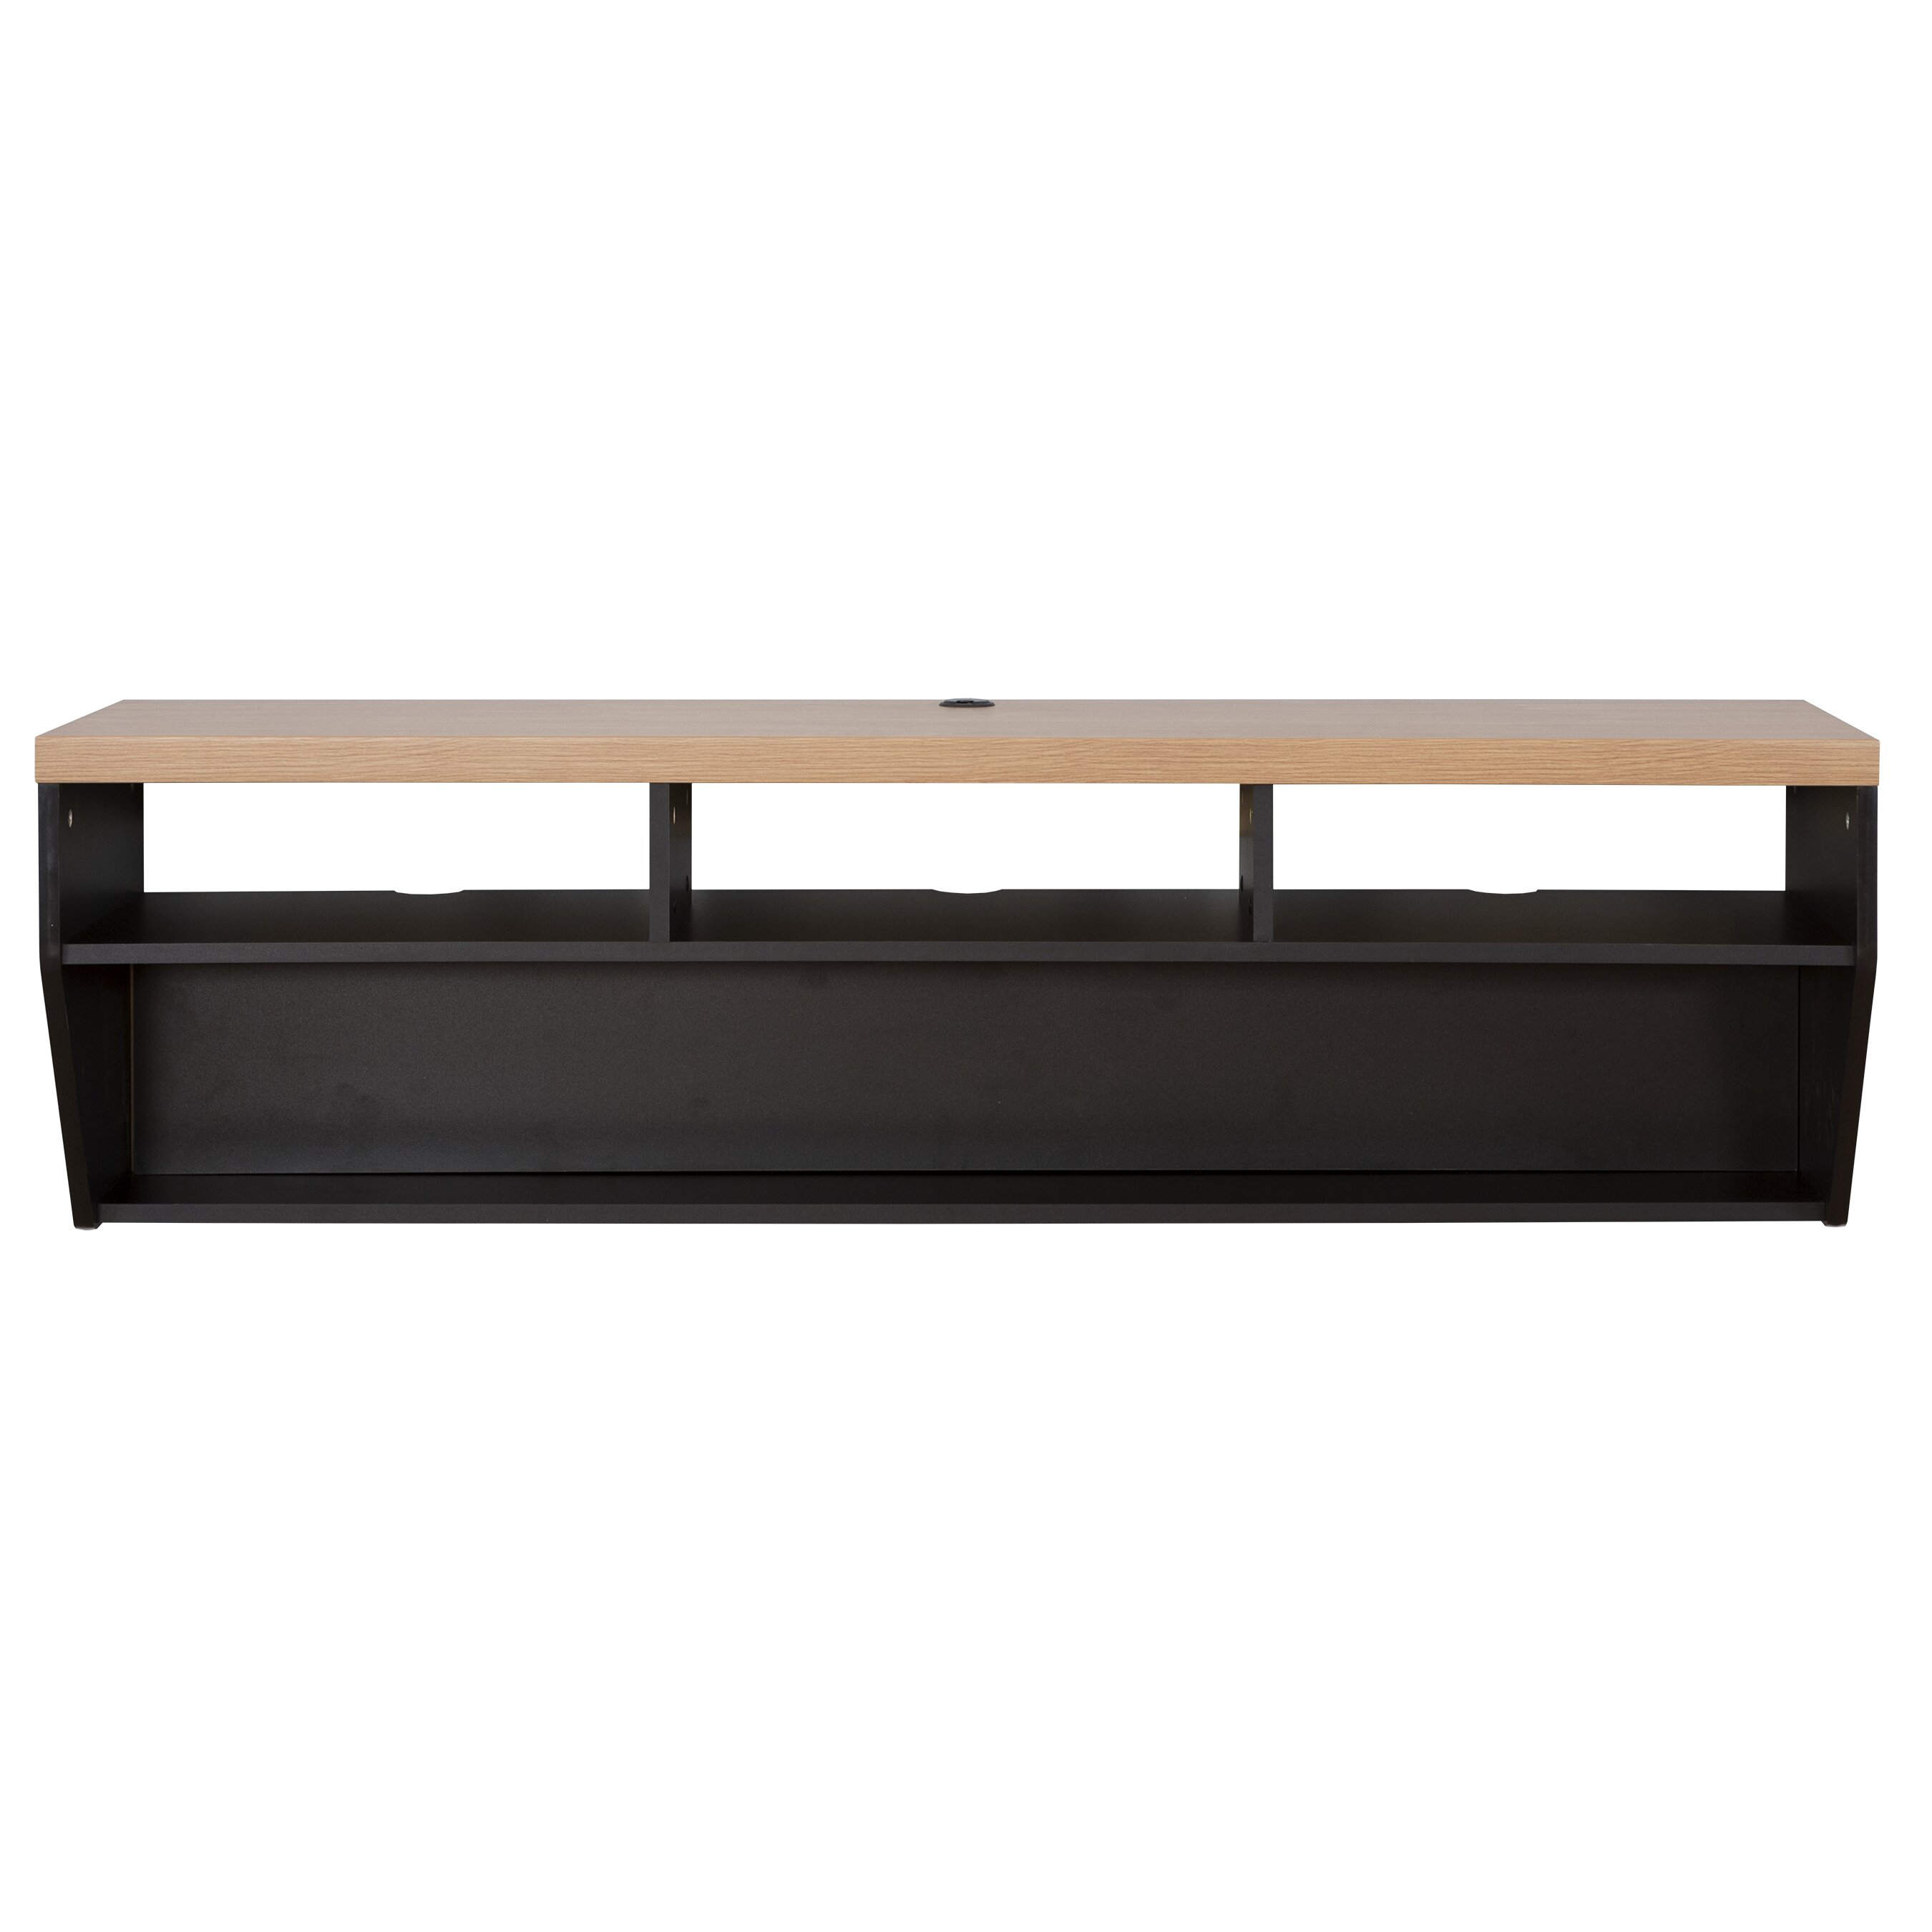 Martin Home Furnishings 60 Angled Sides Wall Mounted TV Component Shelf